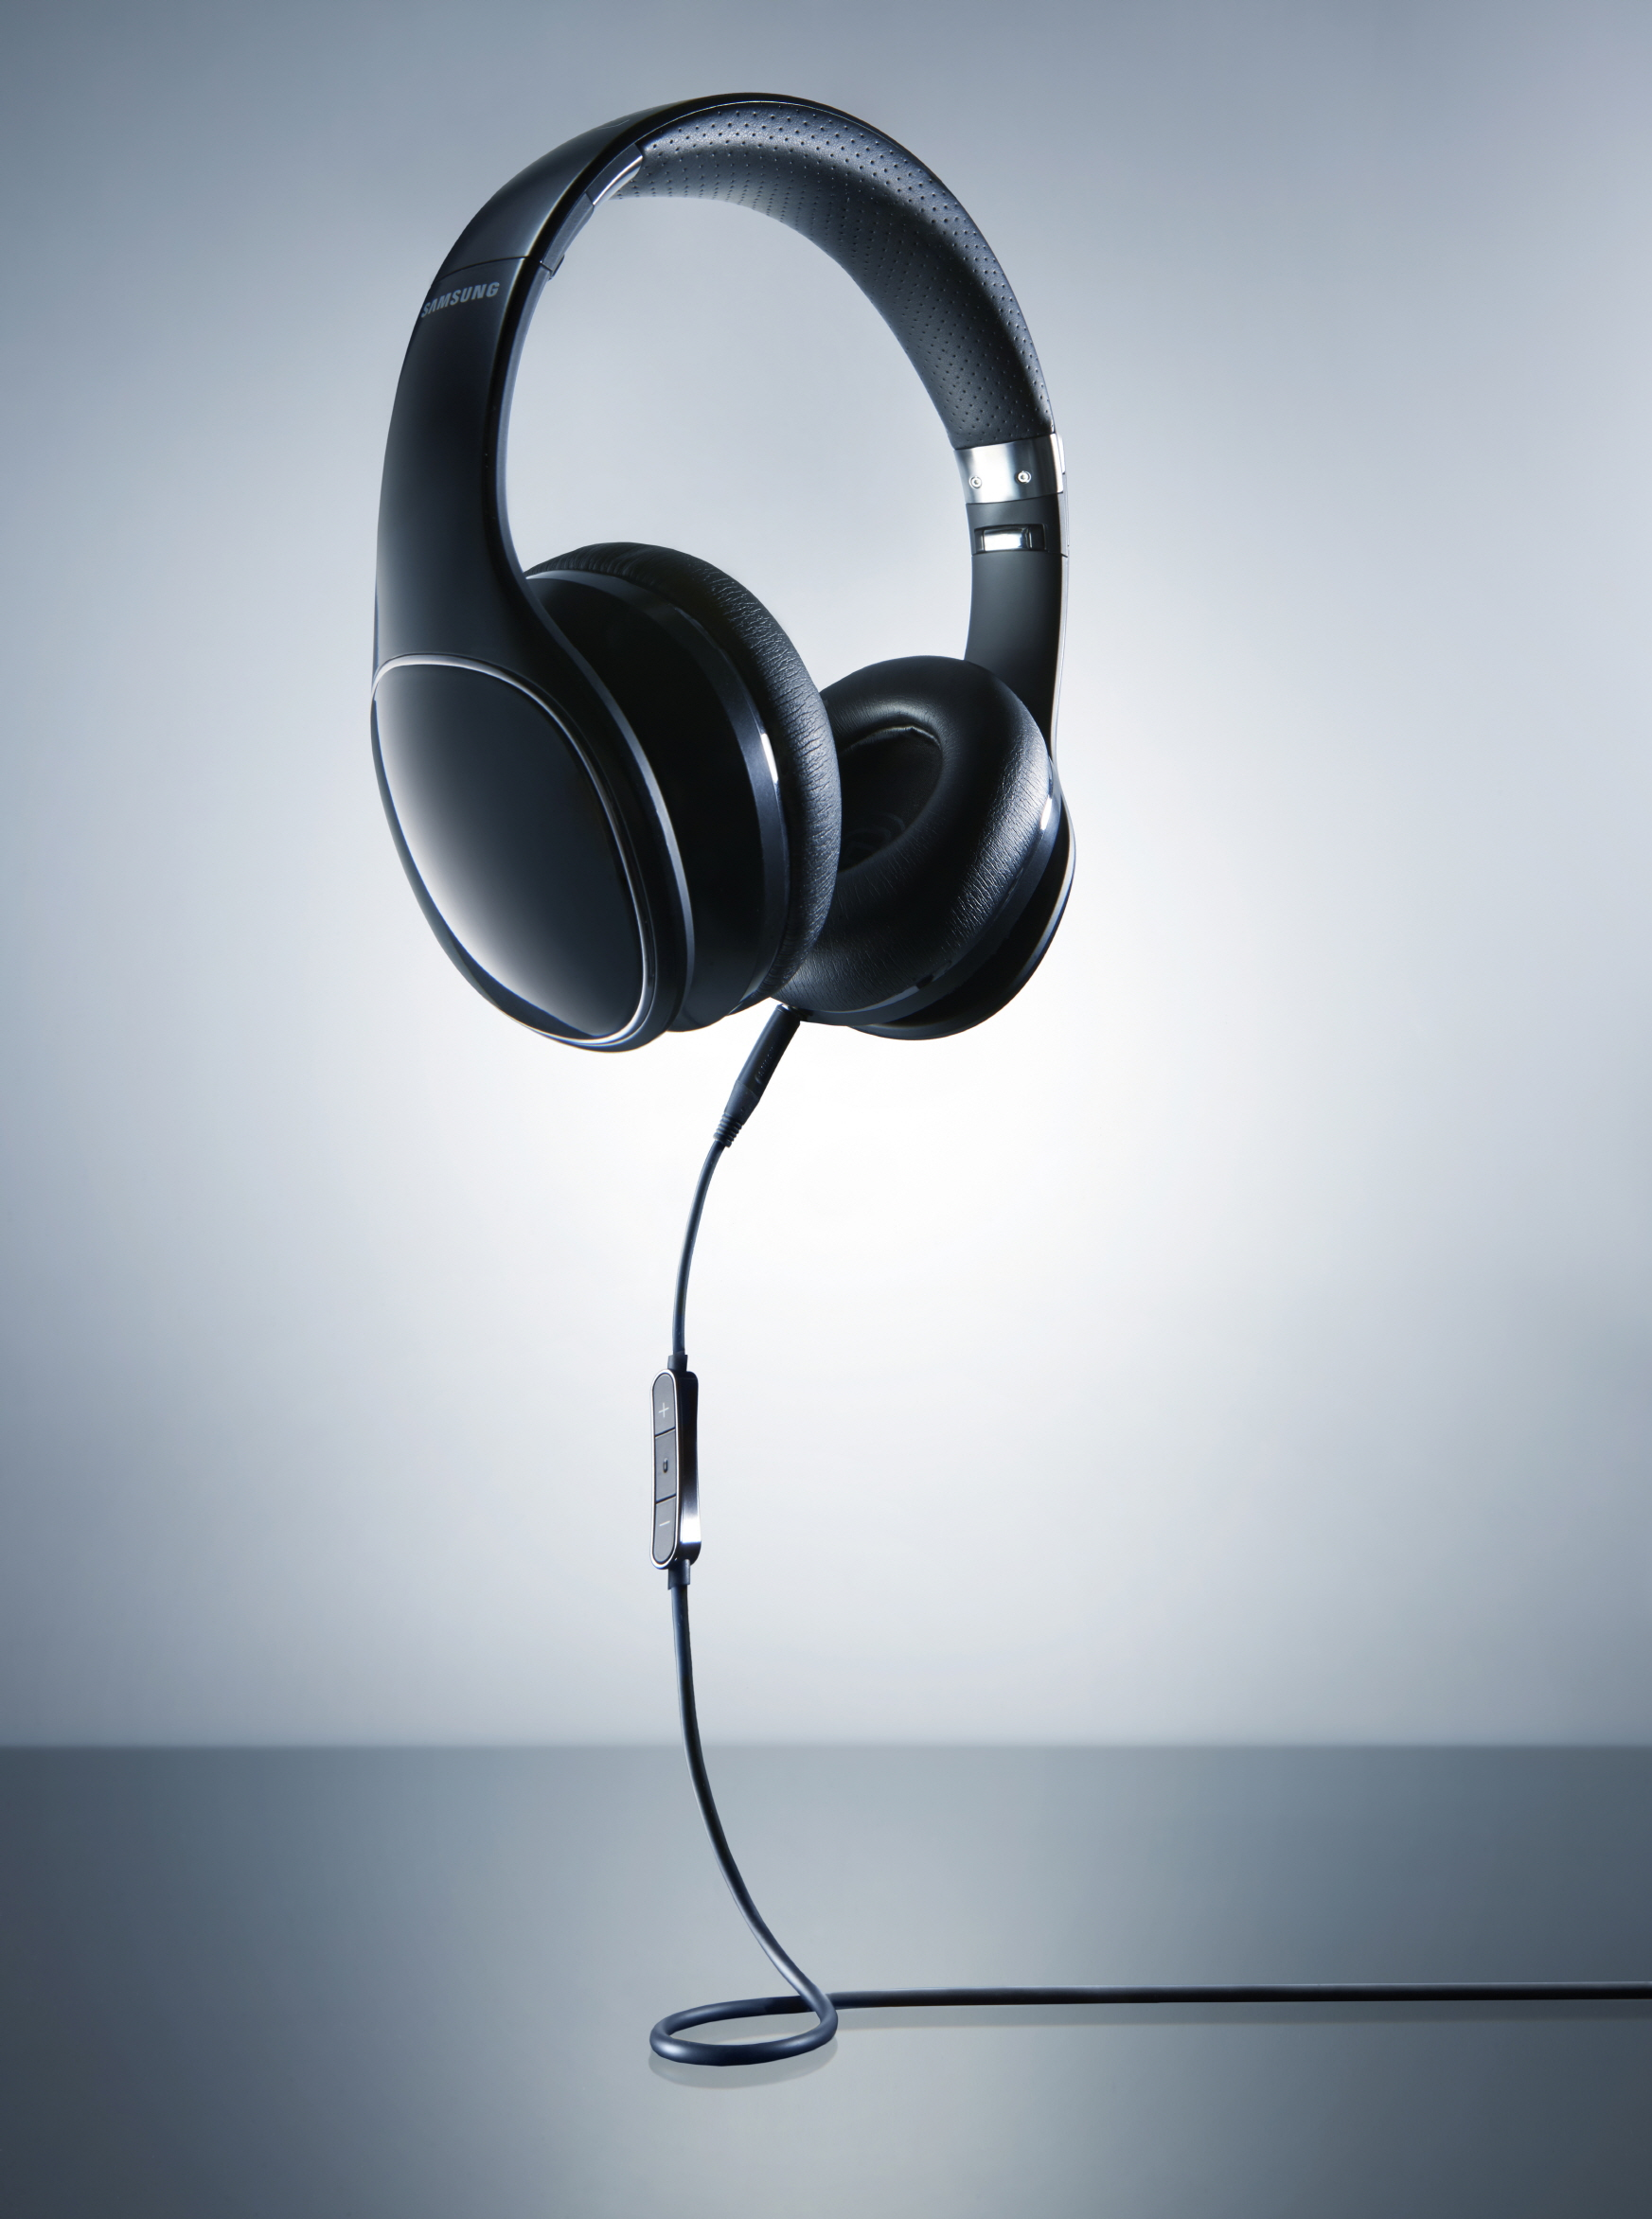 Samsung Launches Two New Level-Audio Products in Denmark